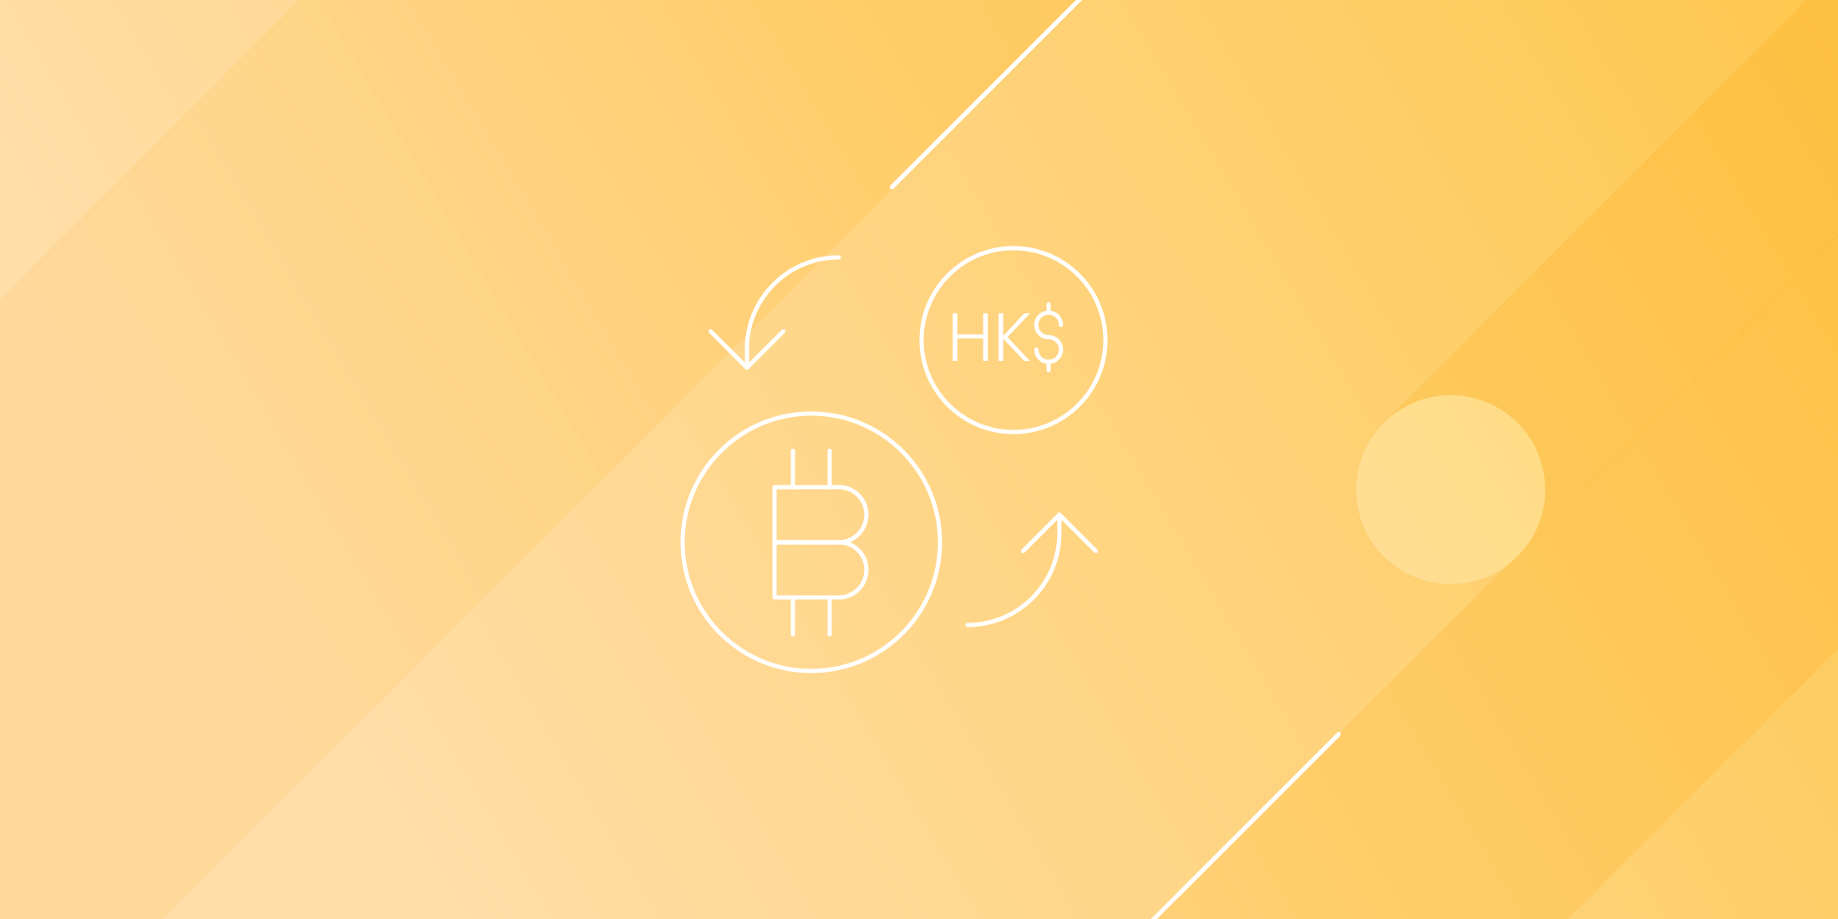 Hong Kong Bitcoin Exchange Guide Getting Btc With Your Hkd -